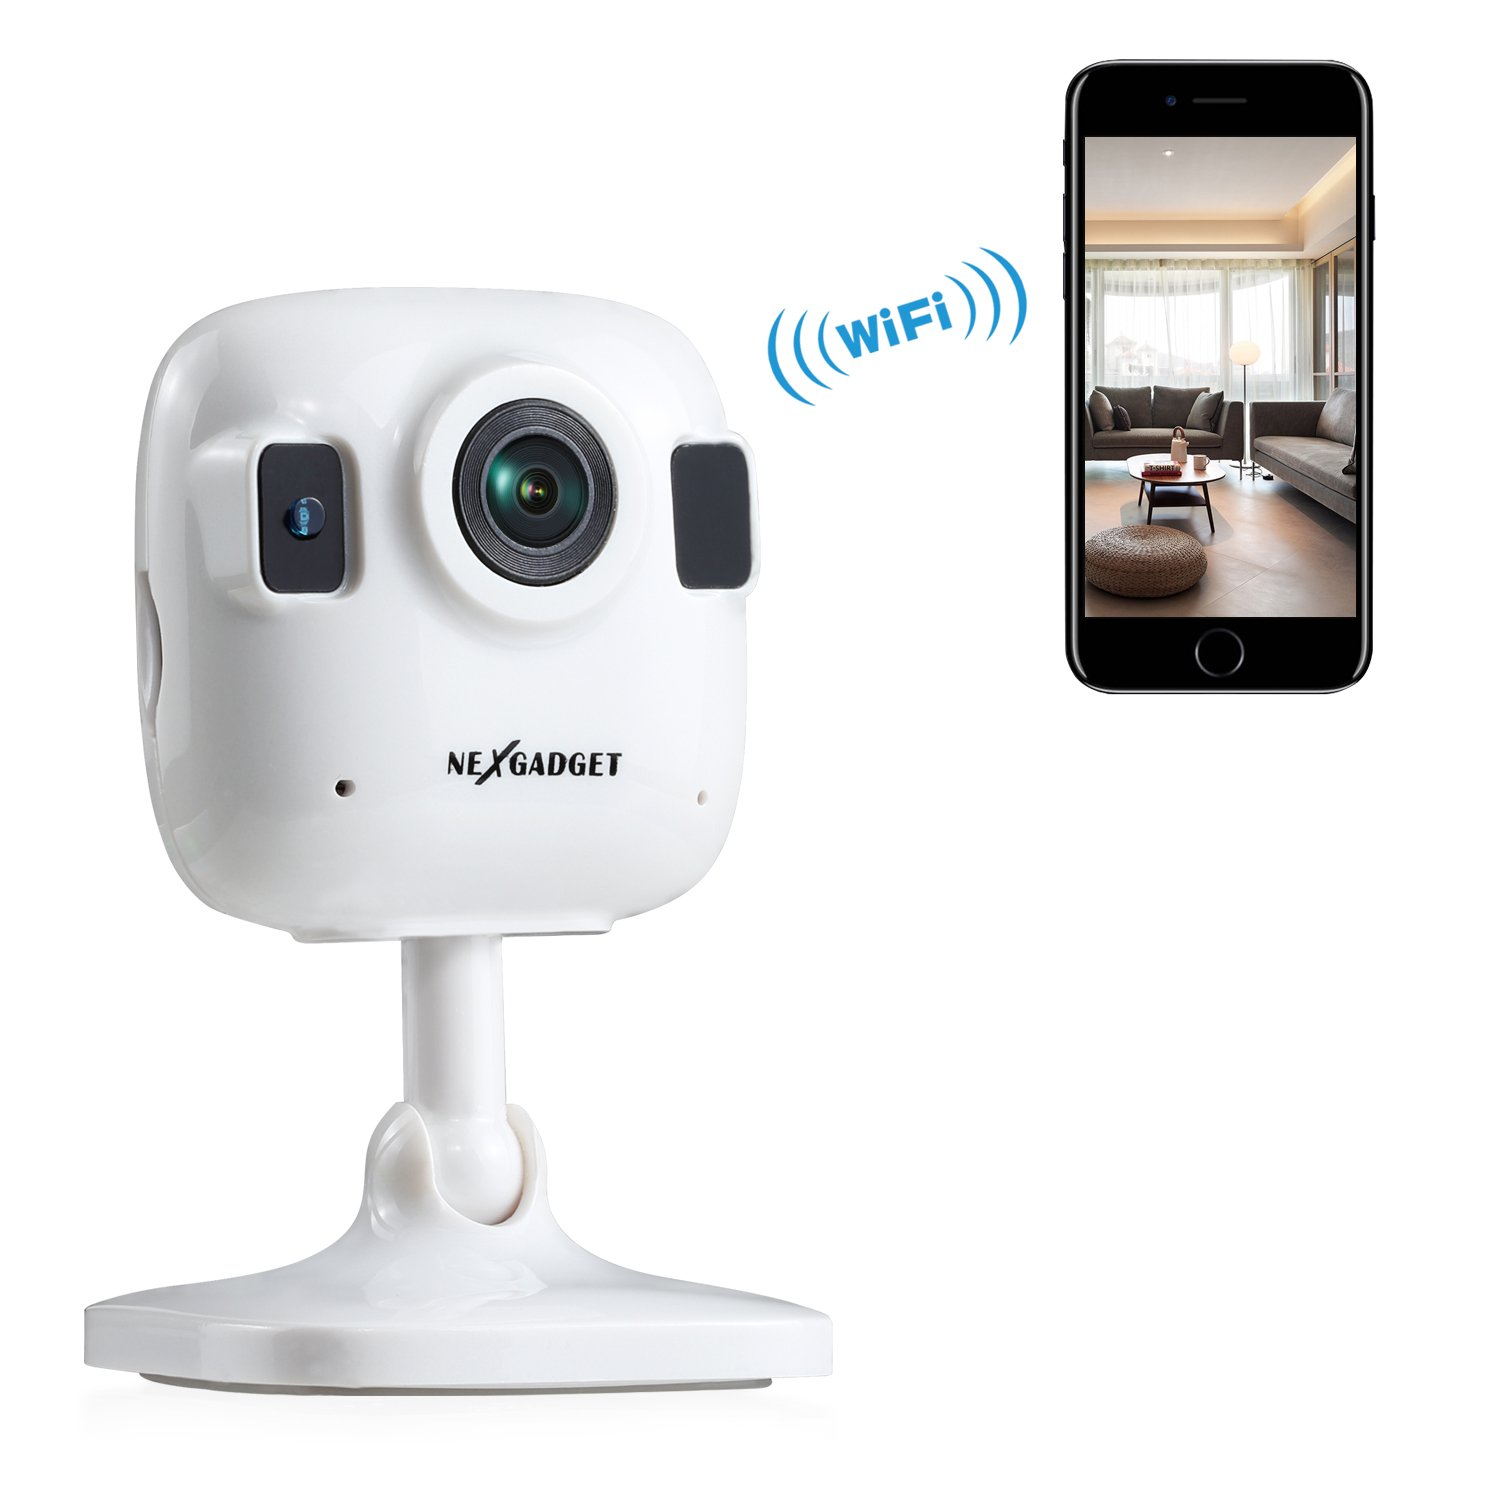 NEXGADGET 720P Wireless IP Security Mini Camera Home Video Monitoring Camera with Night Vision,Two-Way Audio,Motion Detection